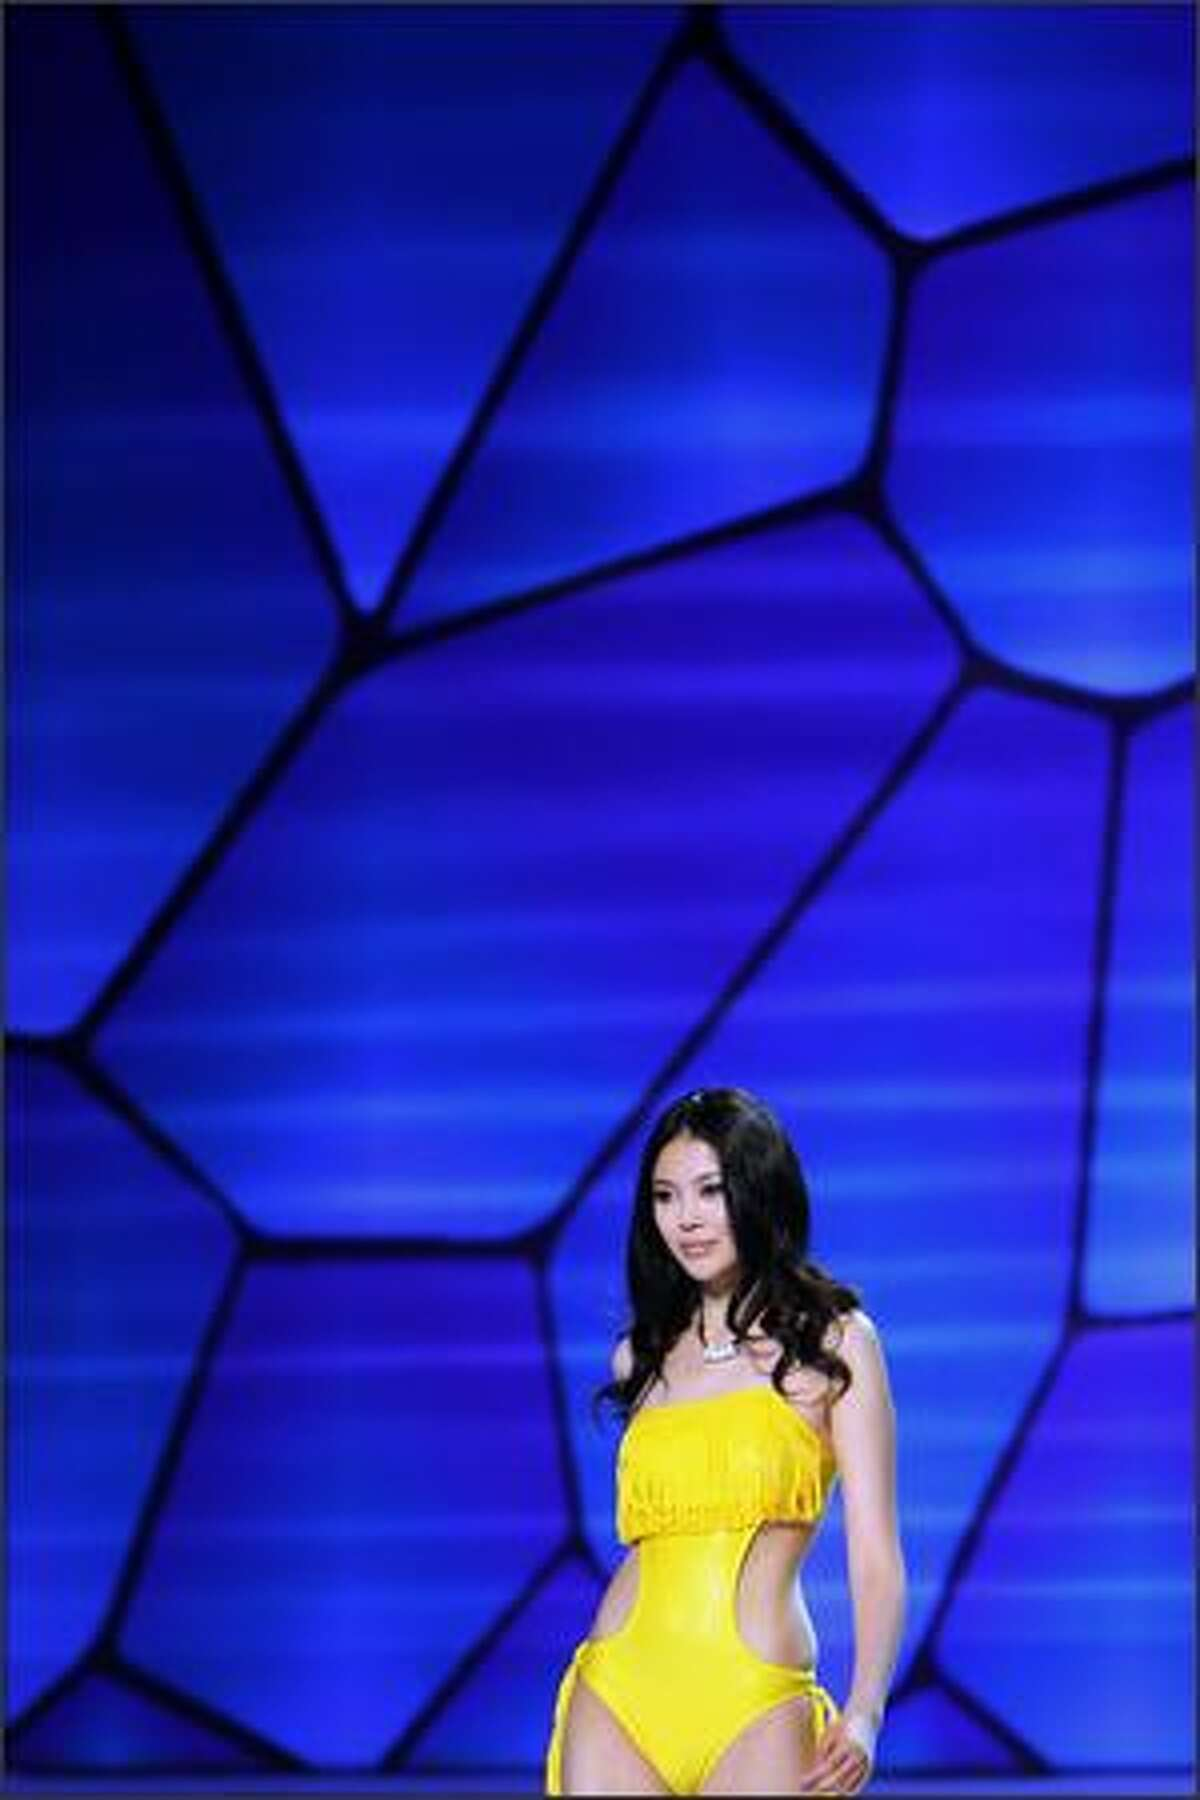 A model walks on the runway during 2009 HOSA CUP, the 6th China Swimming Wear Design Contest at the National Aquatics Center, known as the Water Cube in Beijing, China.